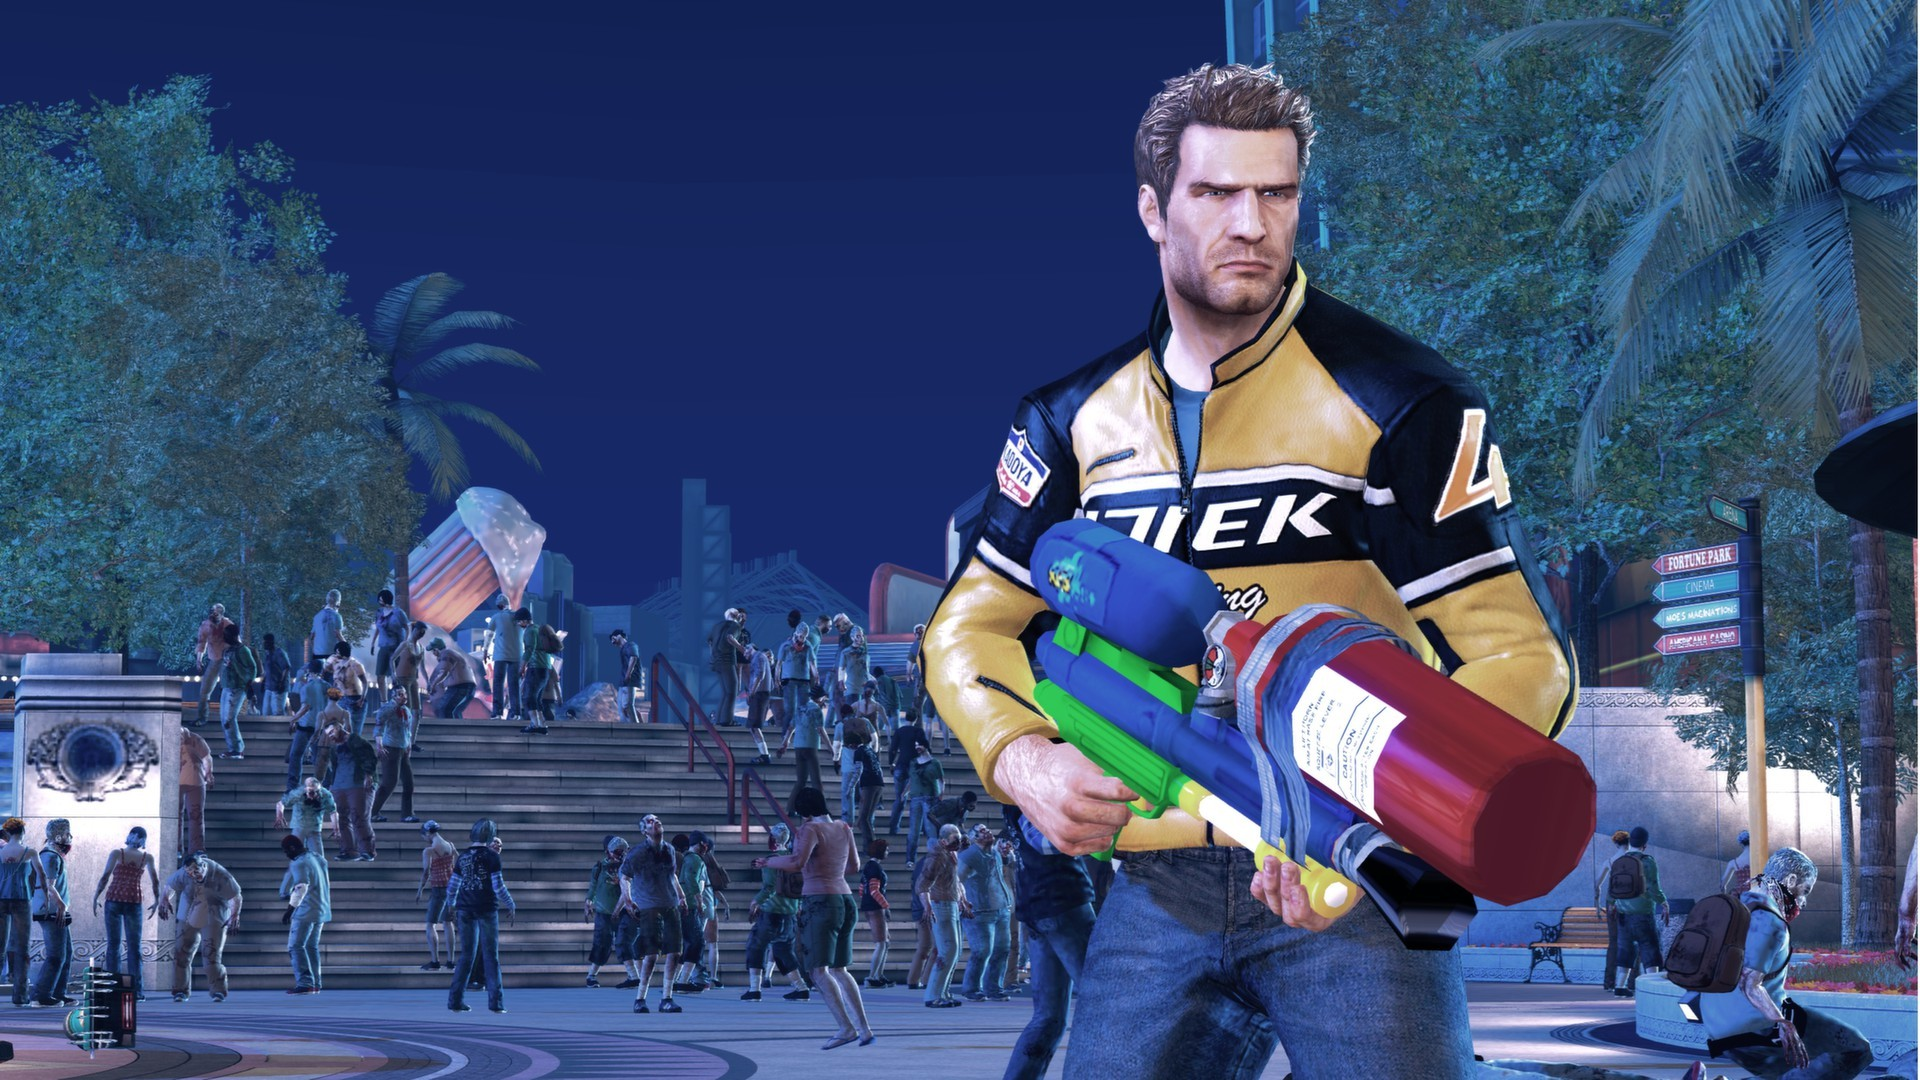 Dead Rising 2 Troubleshooting Guide – Errors, Crashes, and GFWL Fixes